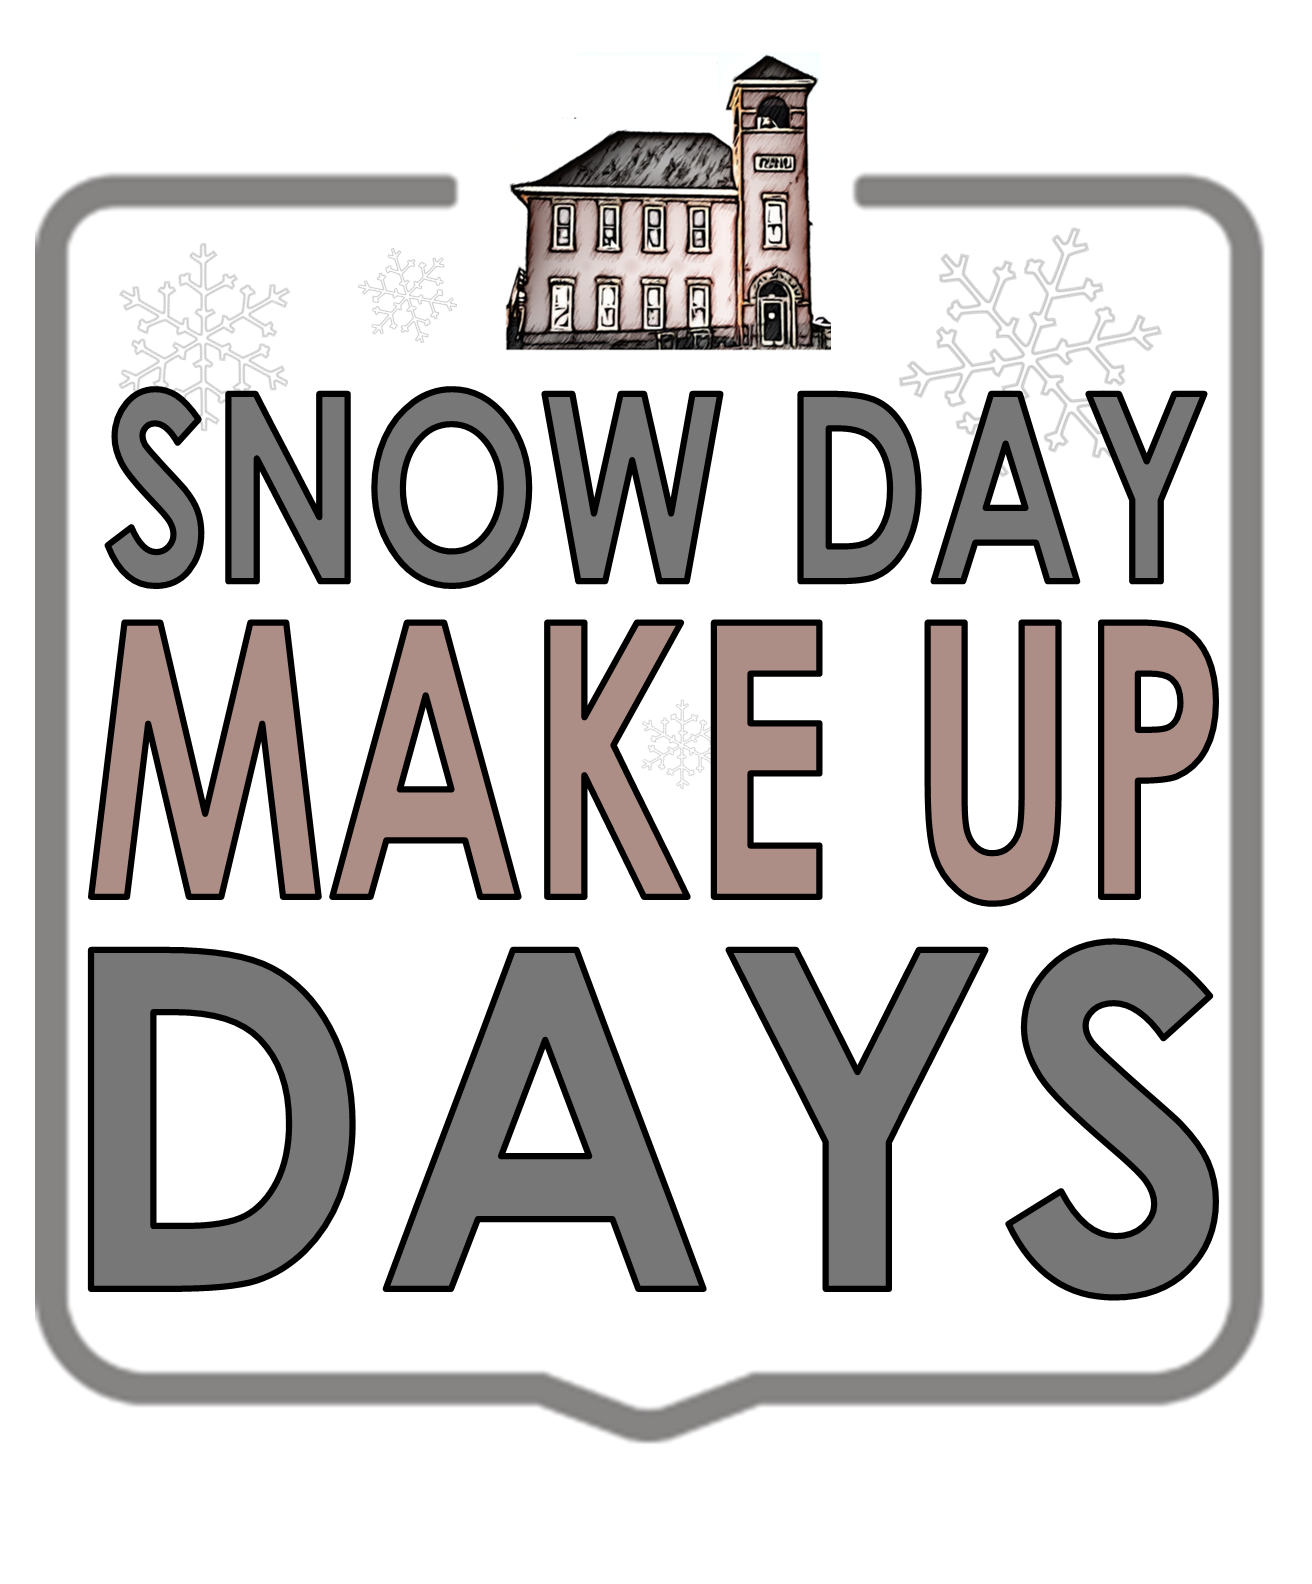 snow day make up days